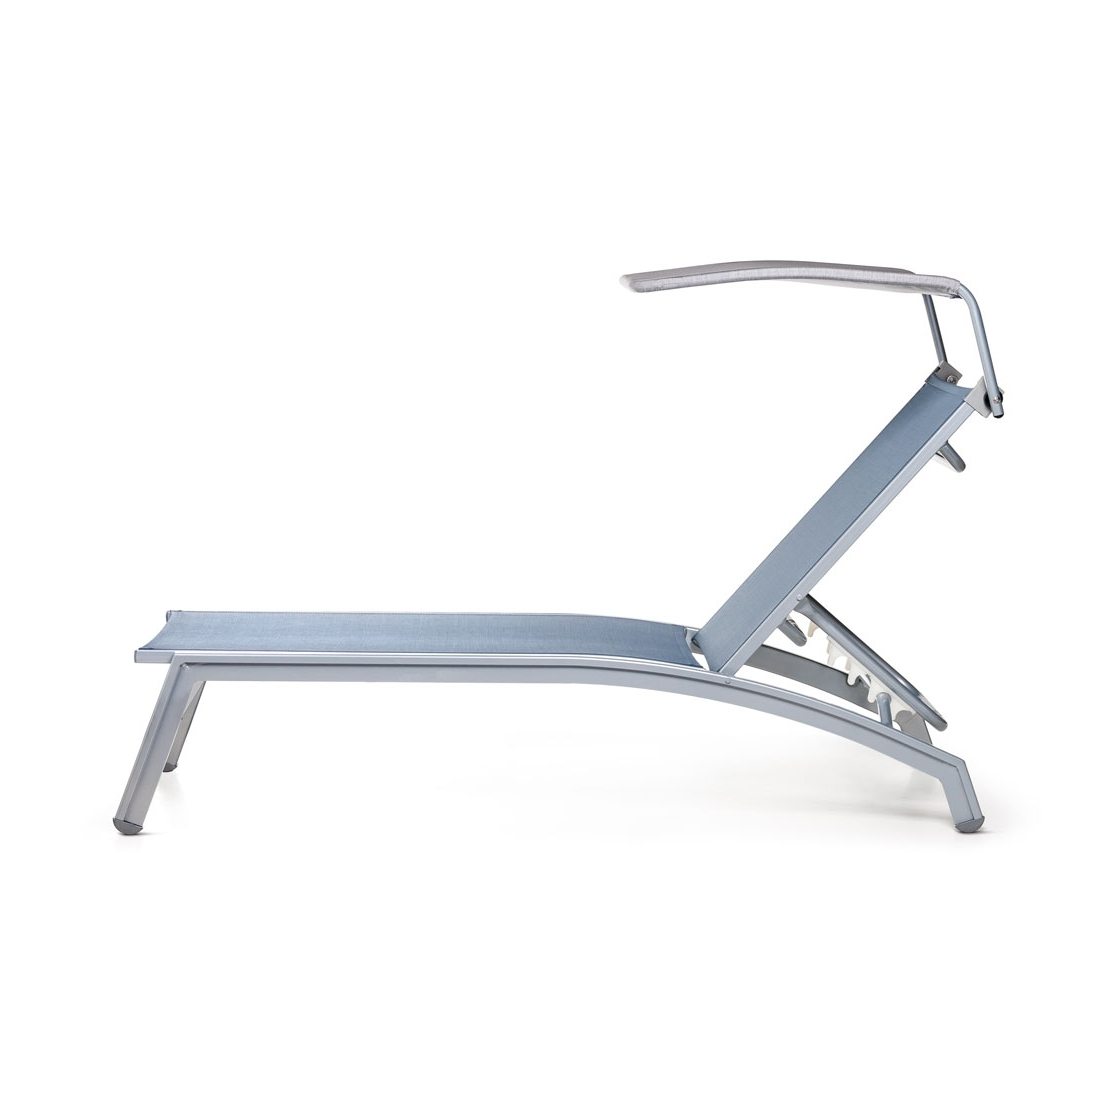 Adjustable Shade Canopywith Chaise Lounge – Pavilion Furniture Regarding Most Recently Released Chaise Lounge Chair With Canopy (View 2 of 15)